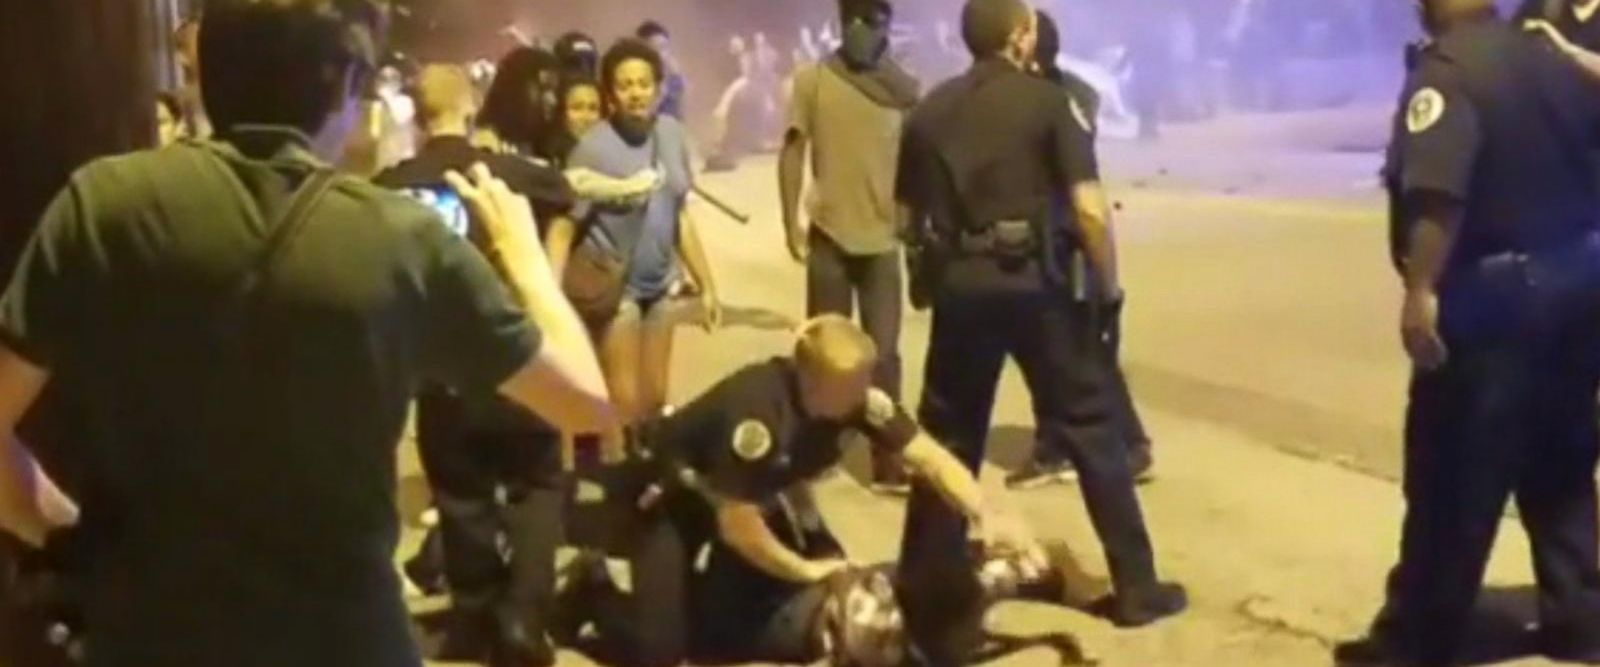 VIDEO: 2 police officers injured in protests at Georgia Tech